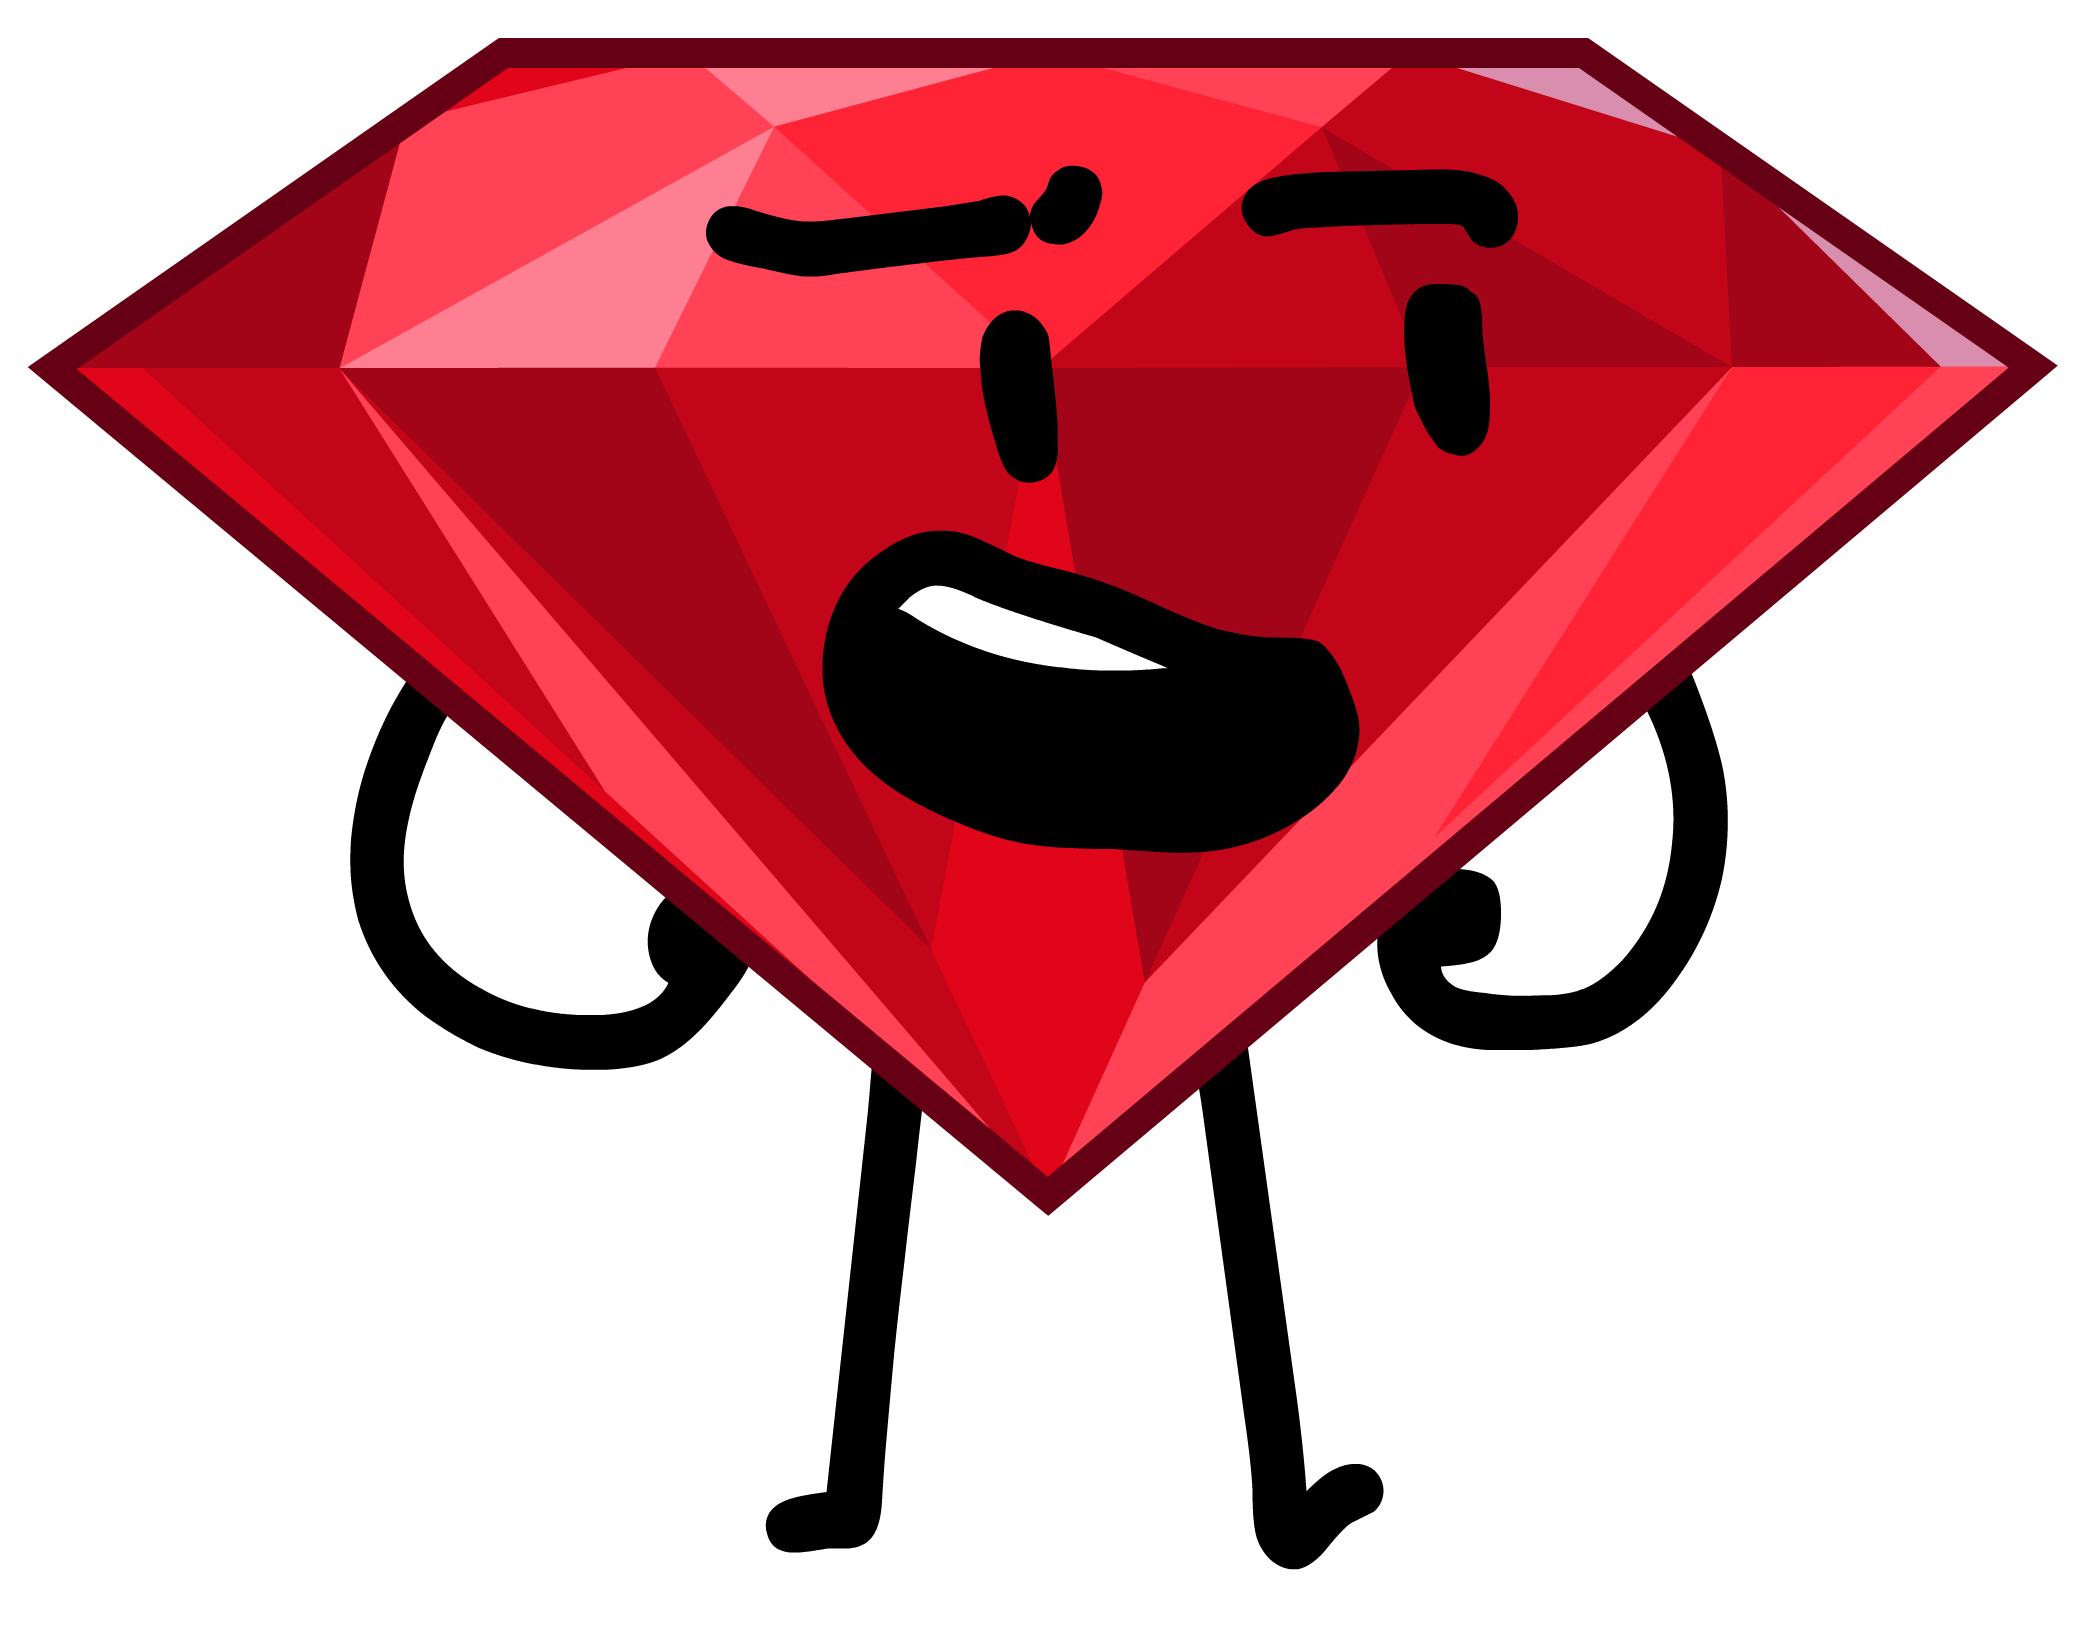 Image ruby e png. Excited clipart fortunate